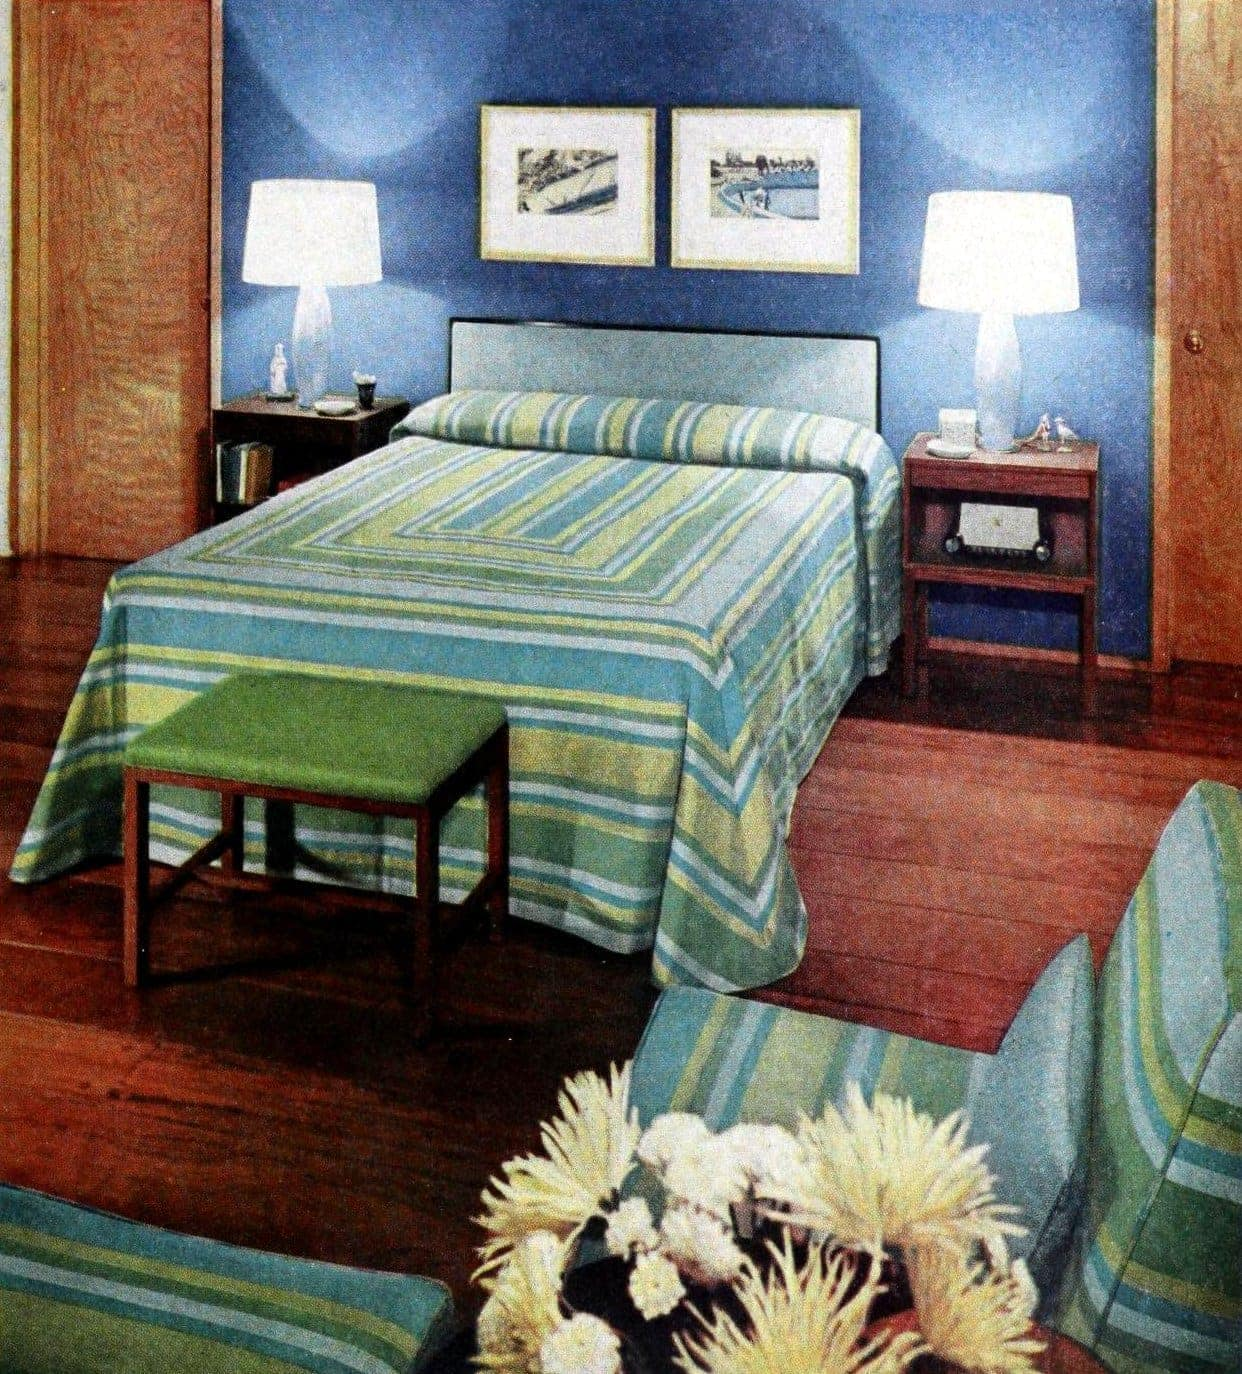 Vintage midcentury 50s master bedroom with blue and green soft furnishings